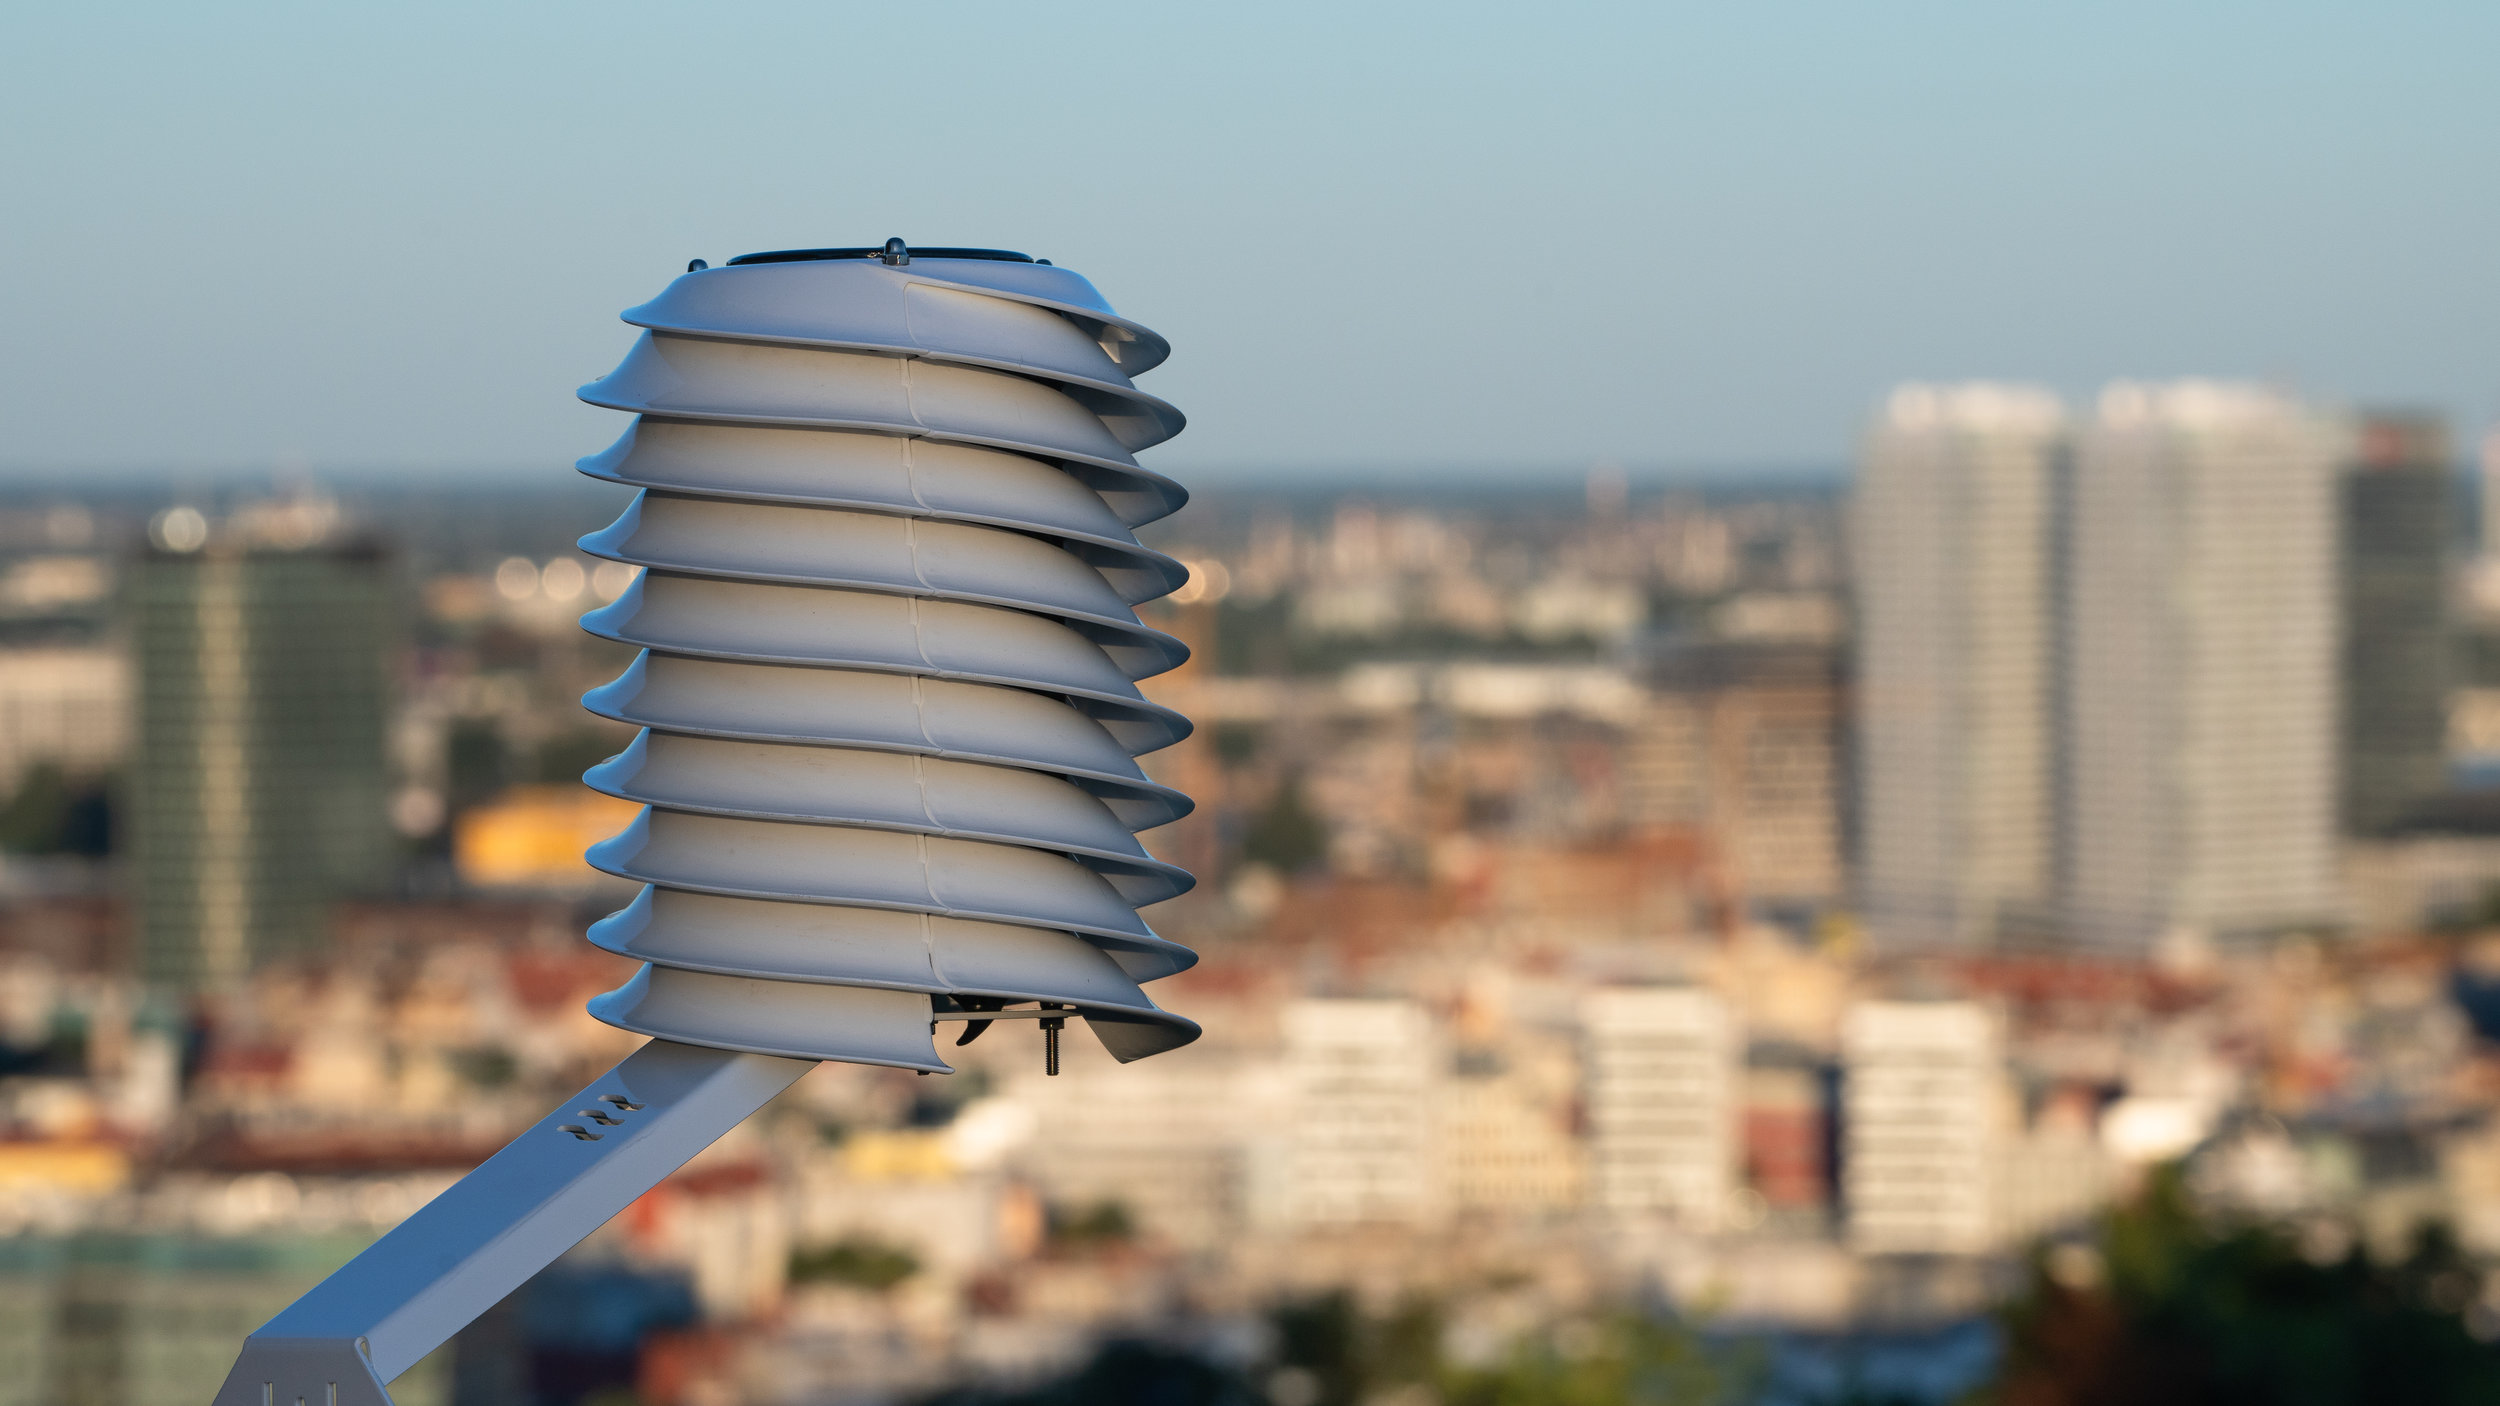 Smart city MeteoHelix IoT Pro weather station overlooking a city skyline